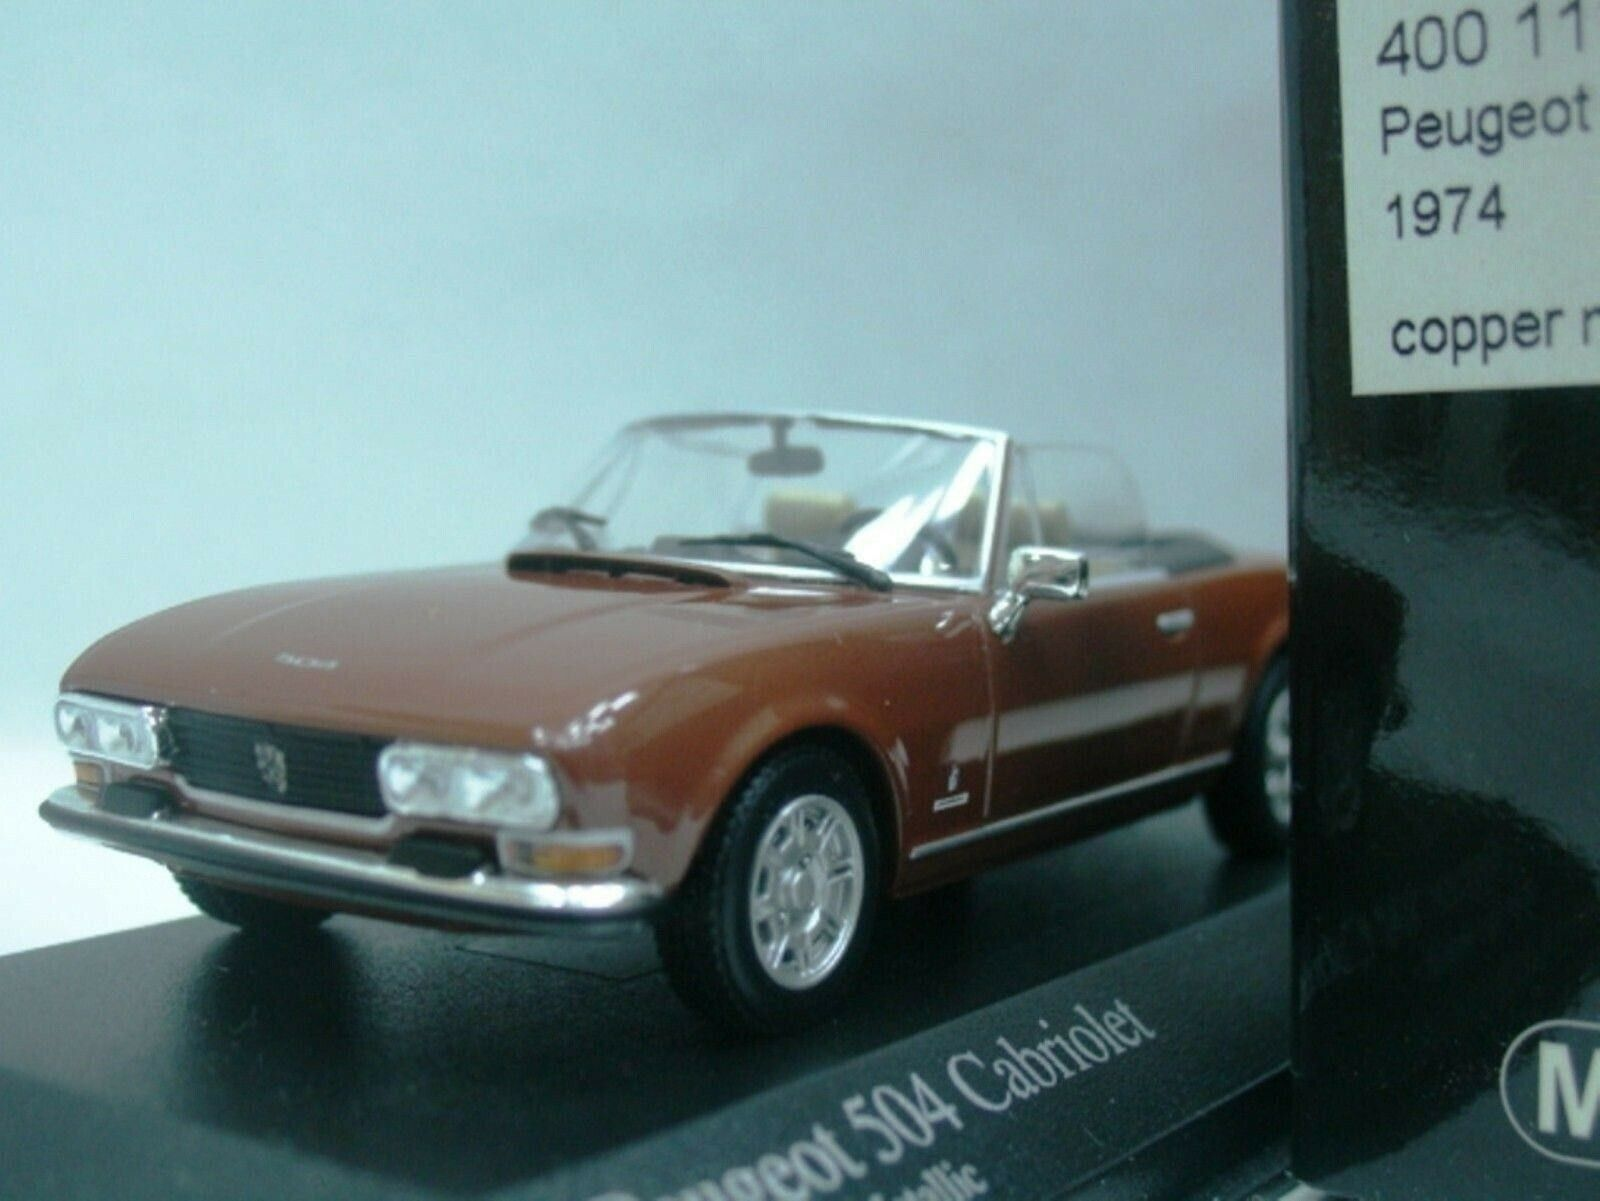 WOW EXTREMELY RARE Peugeot 504 Cabriolet 1974 Brown 1 43 Minichamps-205 404 GTi